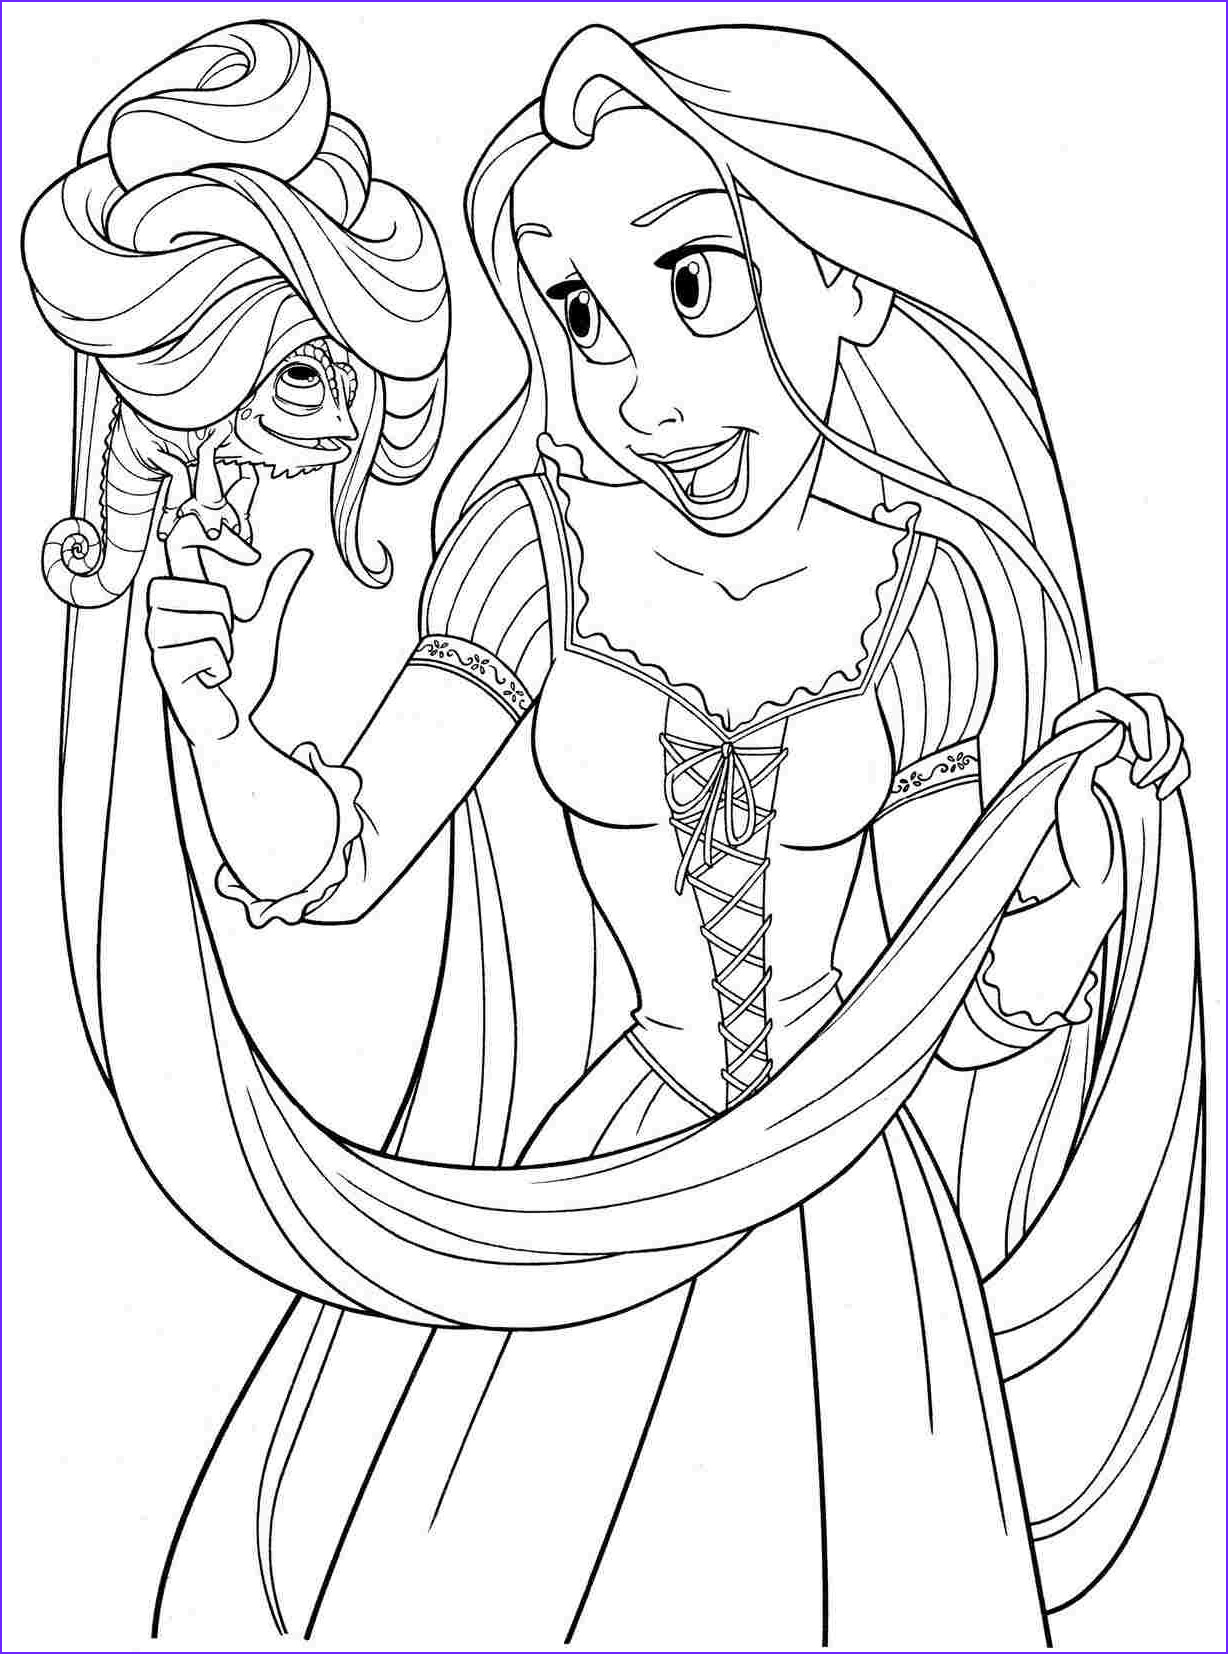 Disney Princess Coloring Book Best Of Collection Printable Free Colouring Pages Disney Princess Rapunzel